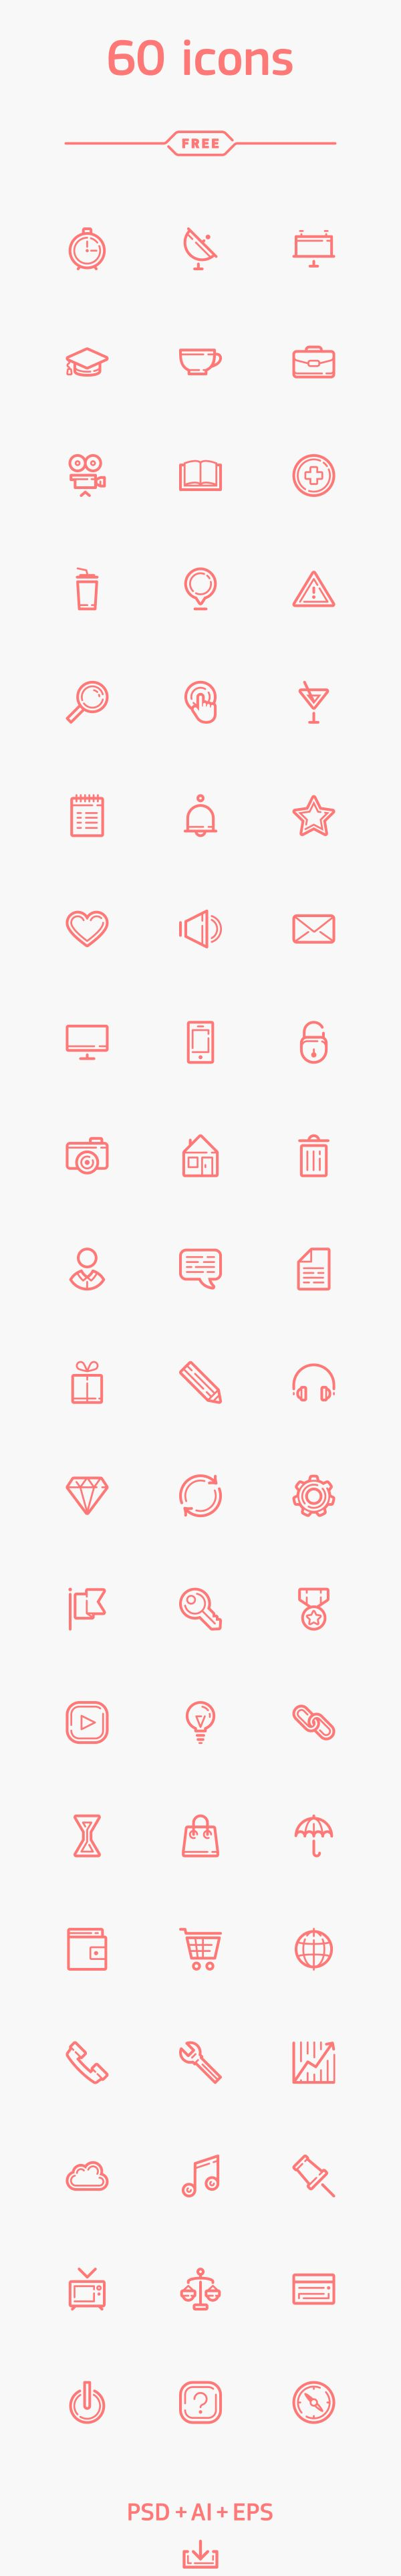 60 free icons on Behance